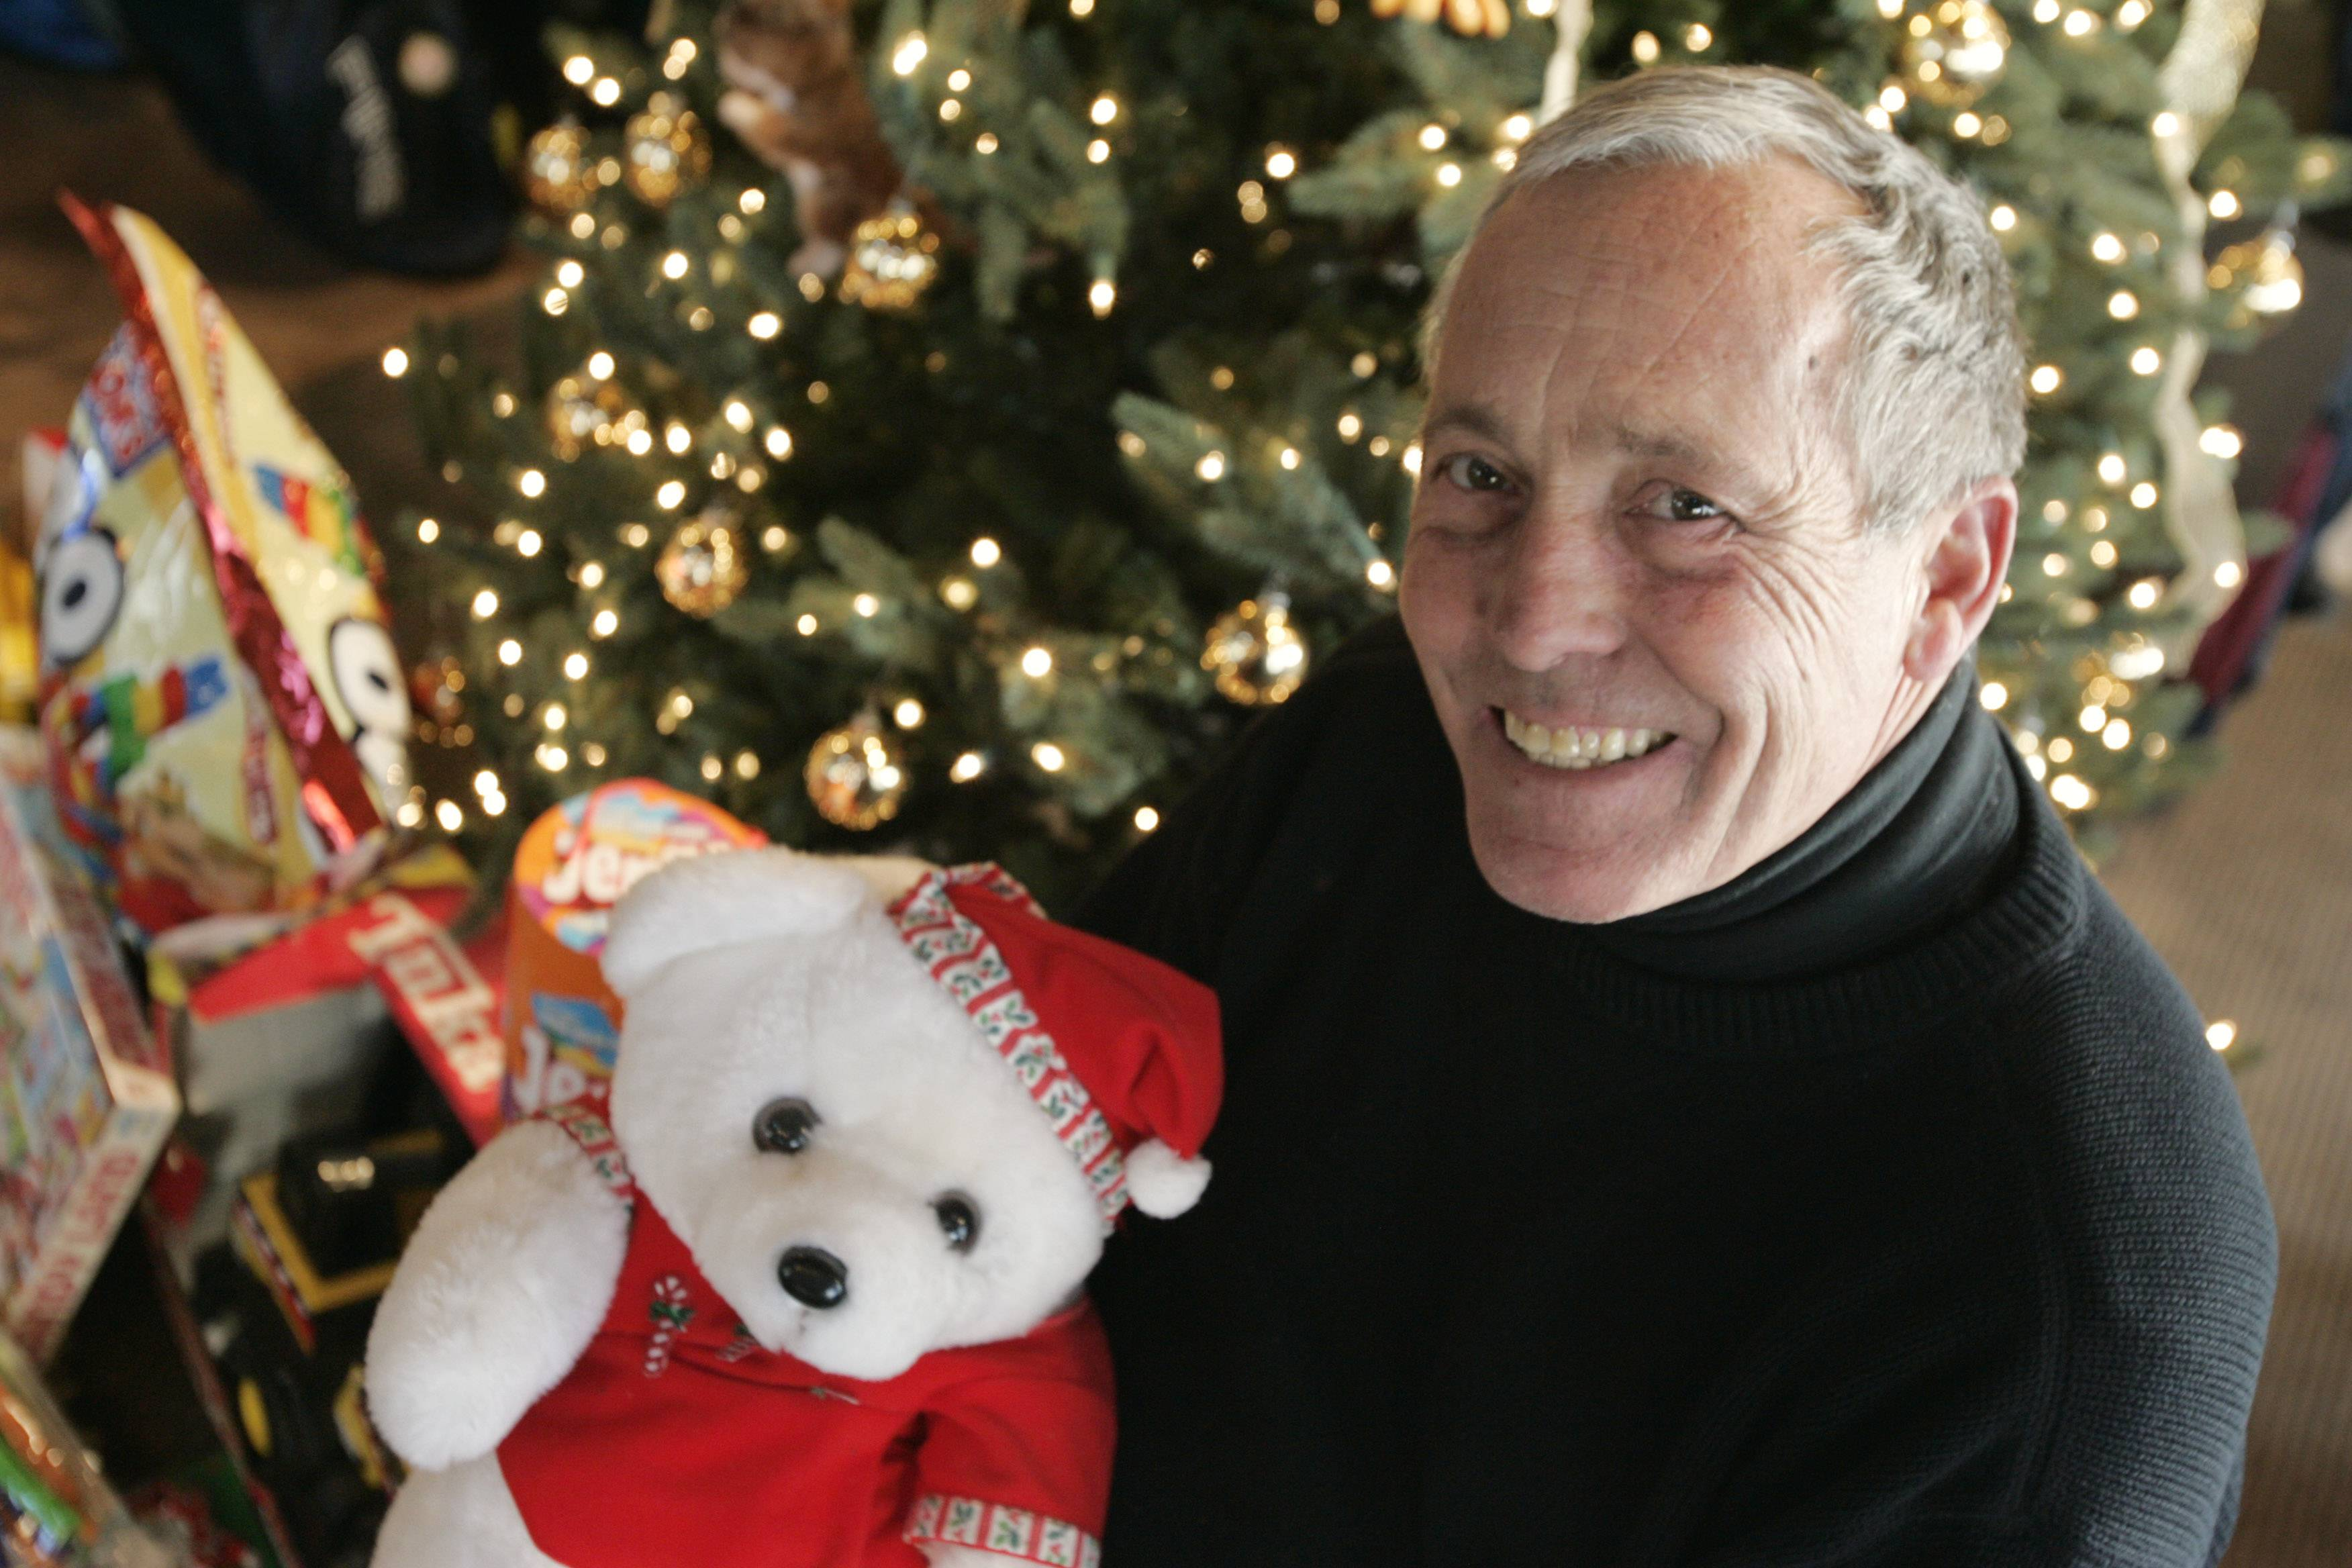 Jim Wheeler organized the Tri-Cities Toys for Kids program for almost as many years as he spent at the golf course.